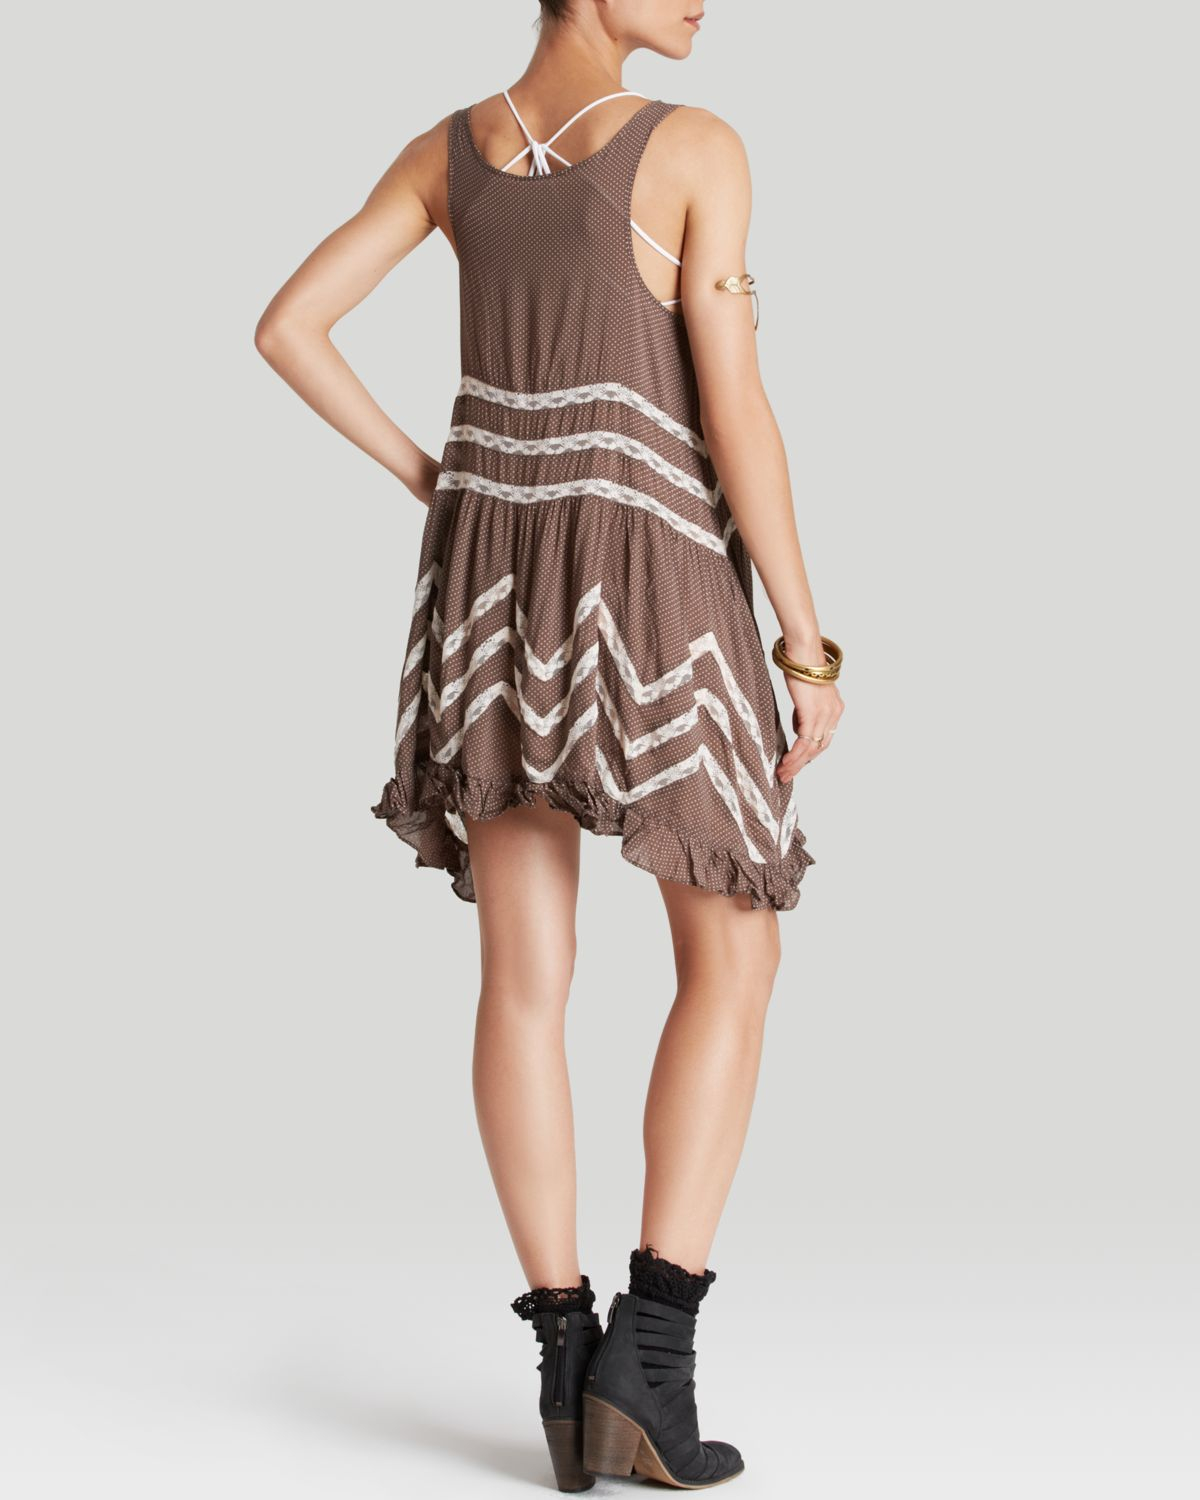 fd14f1e3862b Free People Slip Dress - Voile Trapeze in Brown - Lyst